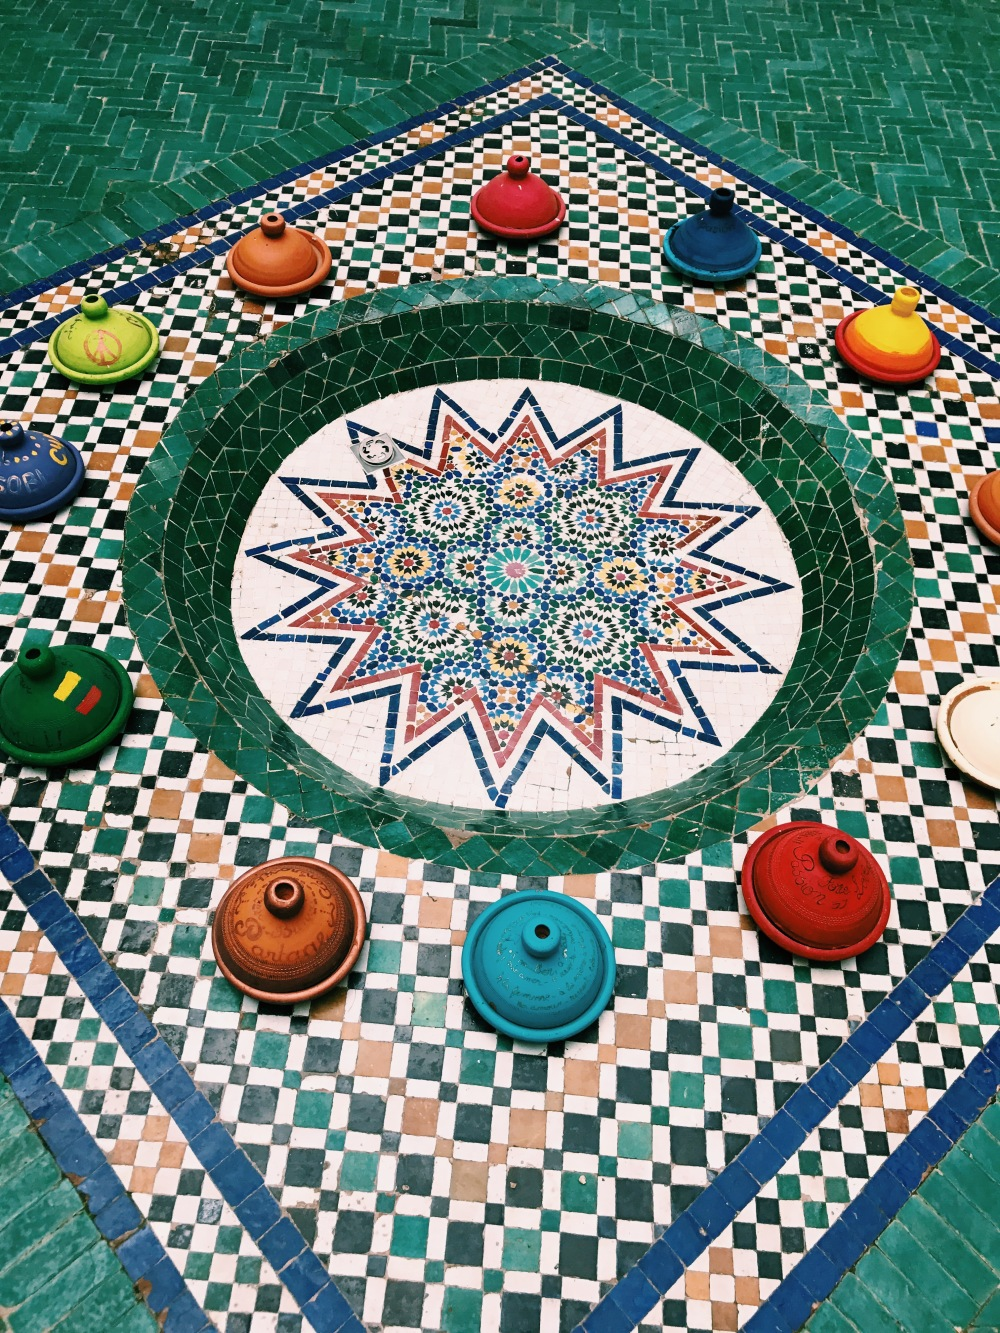 Museum of Marrakech colorful tiles